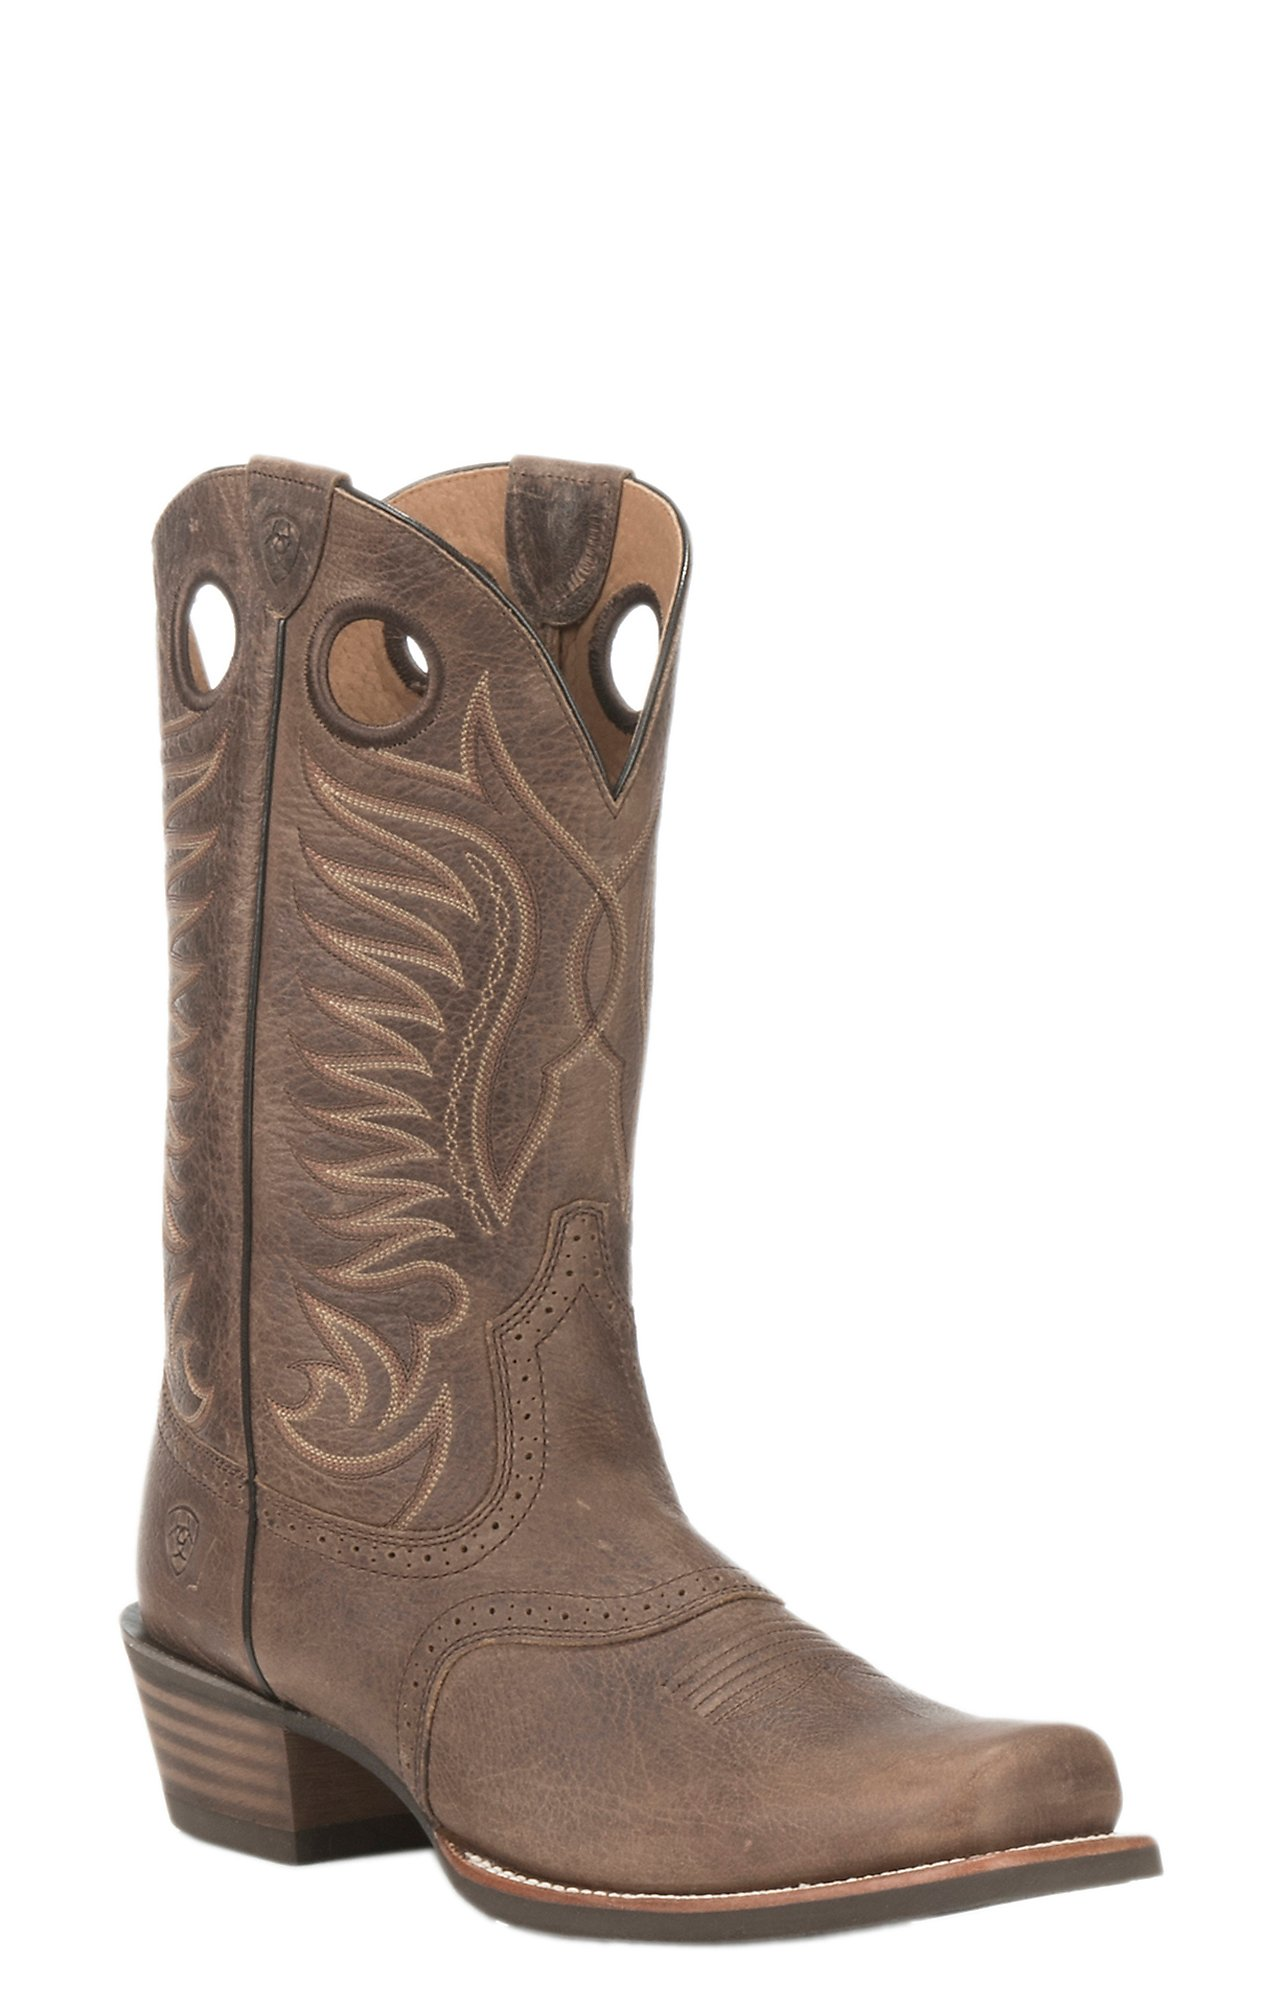 Ariat Men's Heritage Hot Shot Cowboy Boot